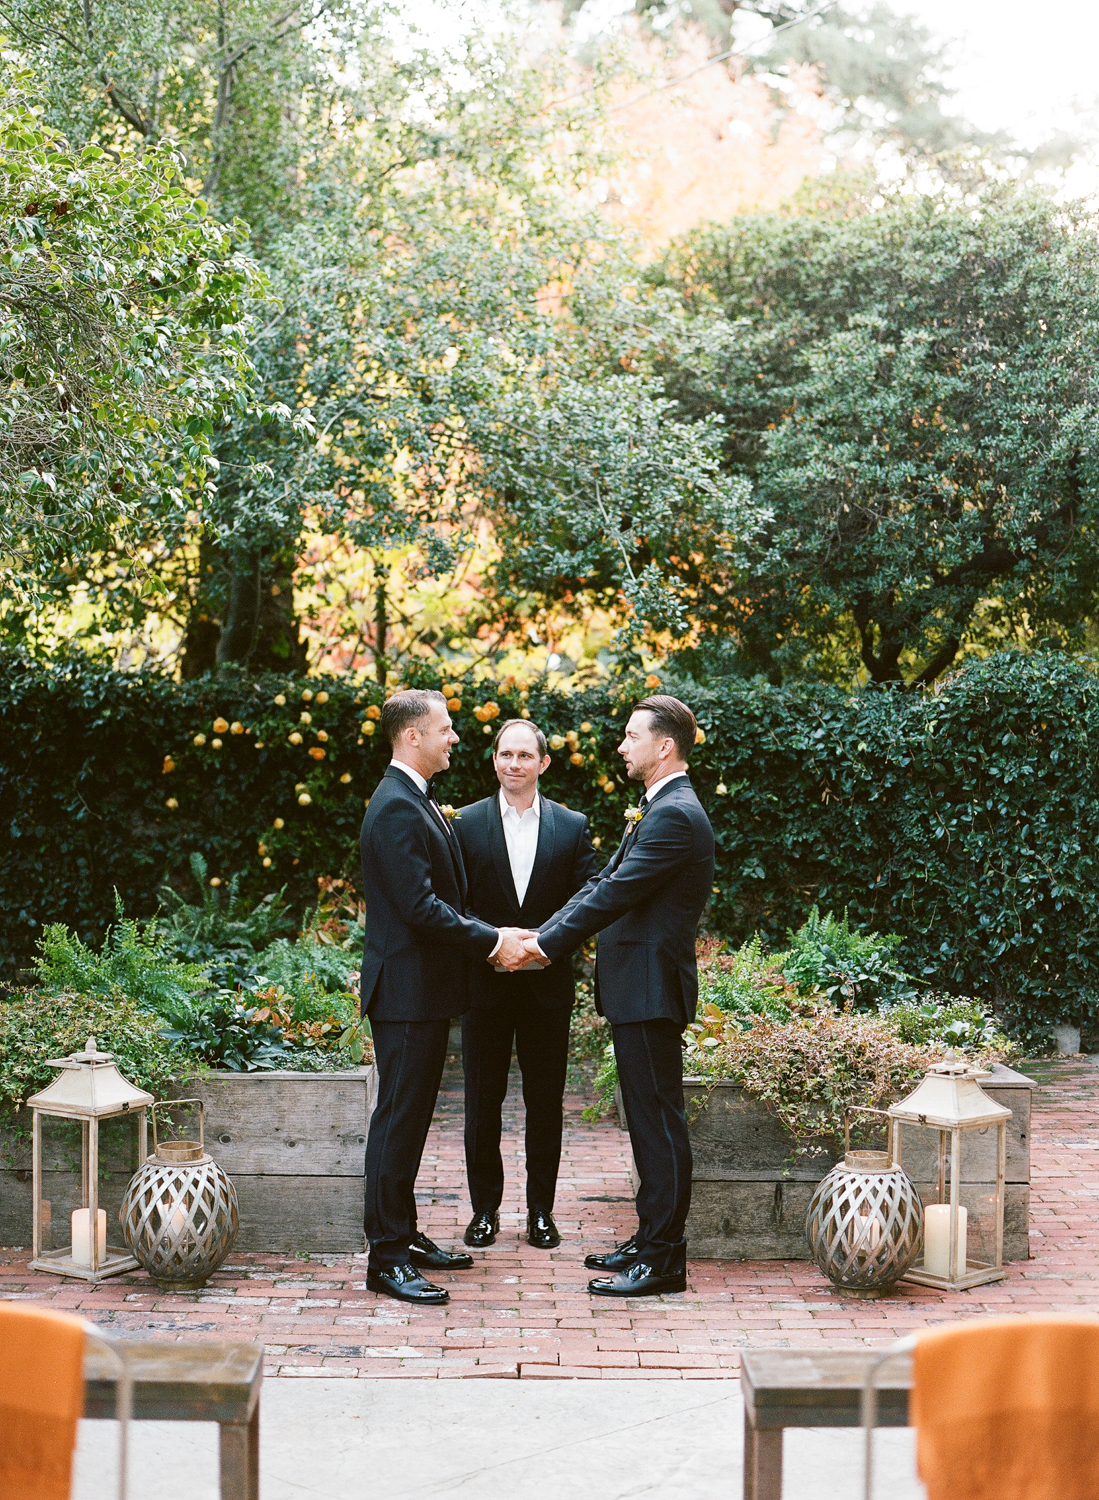 Two grooms getting married at a private ceremony in St. Helena, California; Sylvie Gil Photography